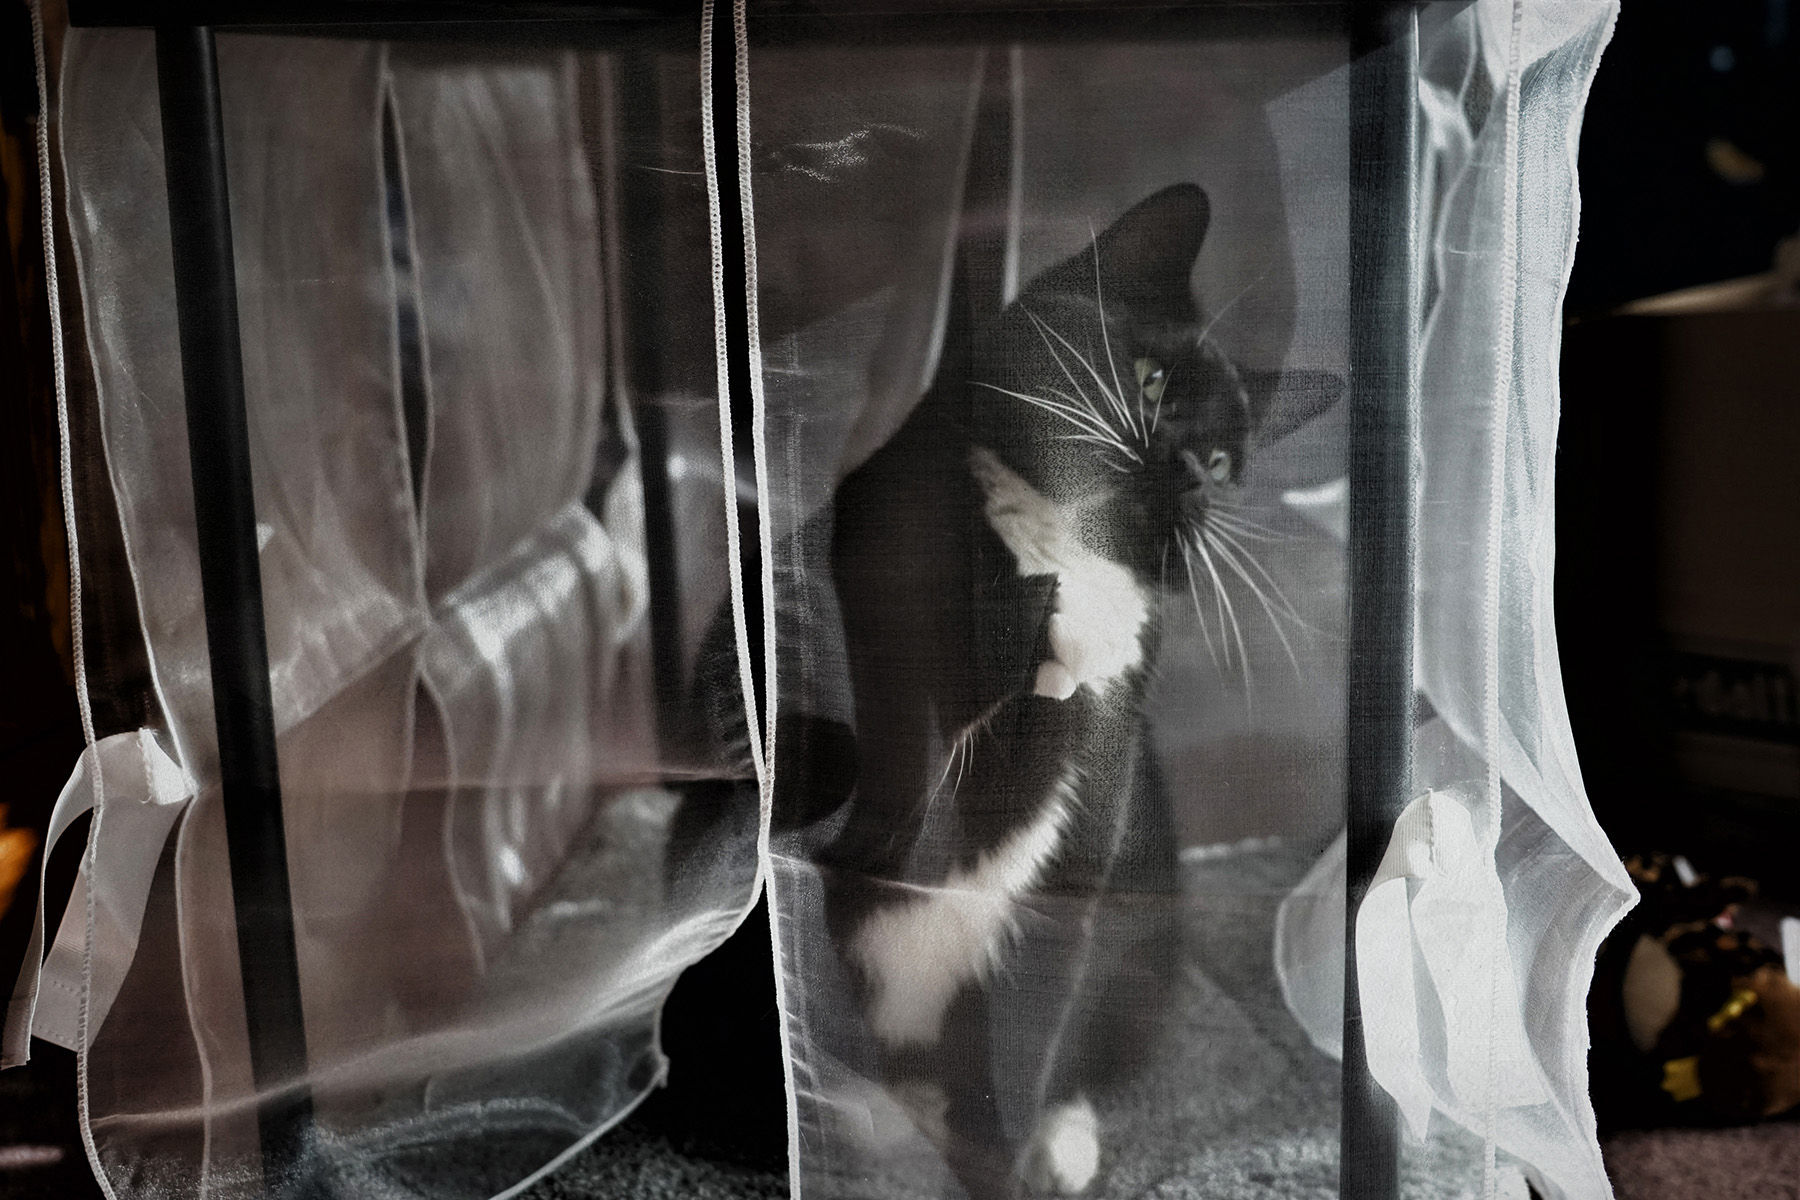 The Cat in Black and White